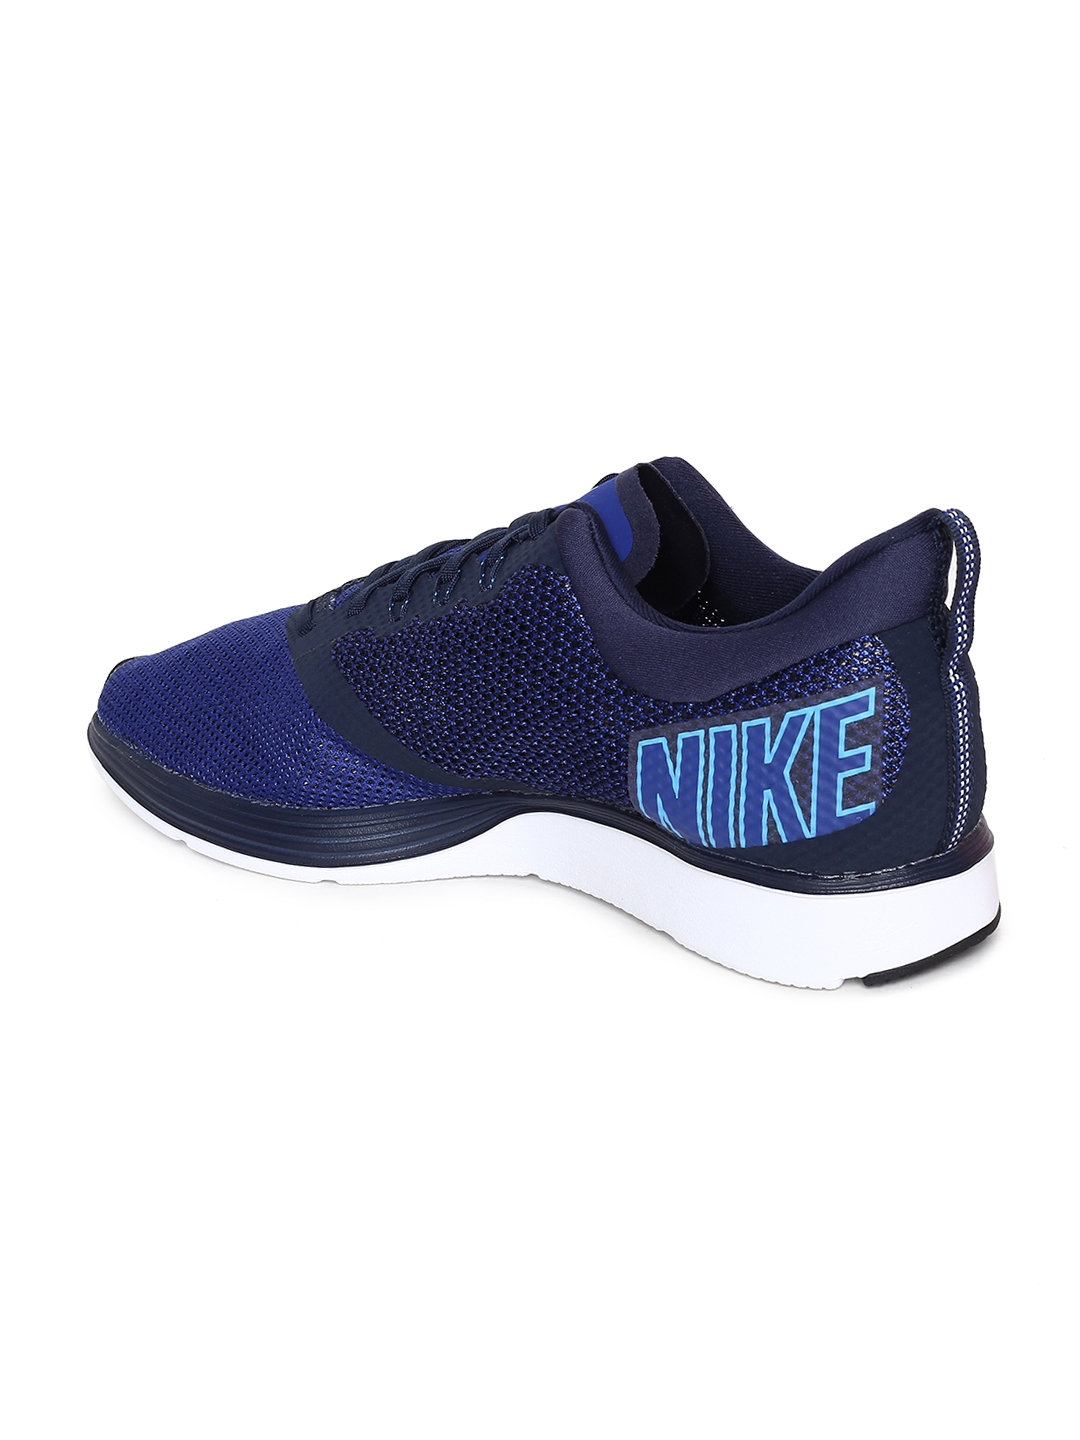 a371182b51dbf Buy Nike Men Blue Zoom Strike Running Shoes - Sports Shoes for Men ...